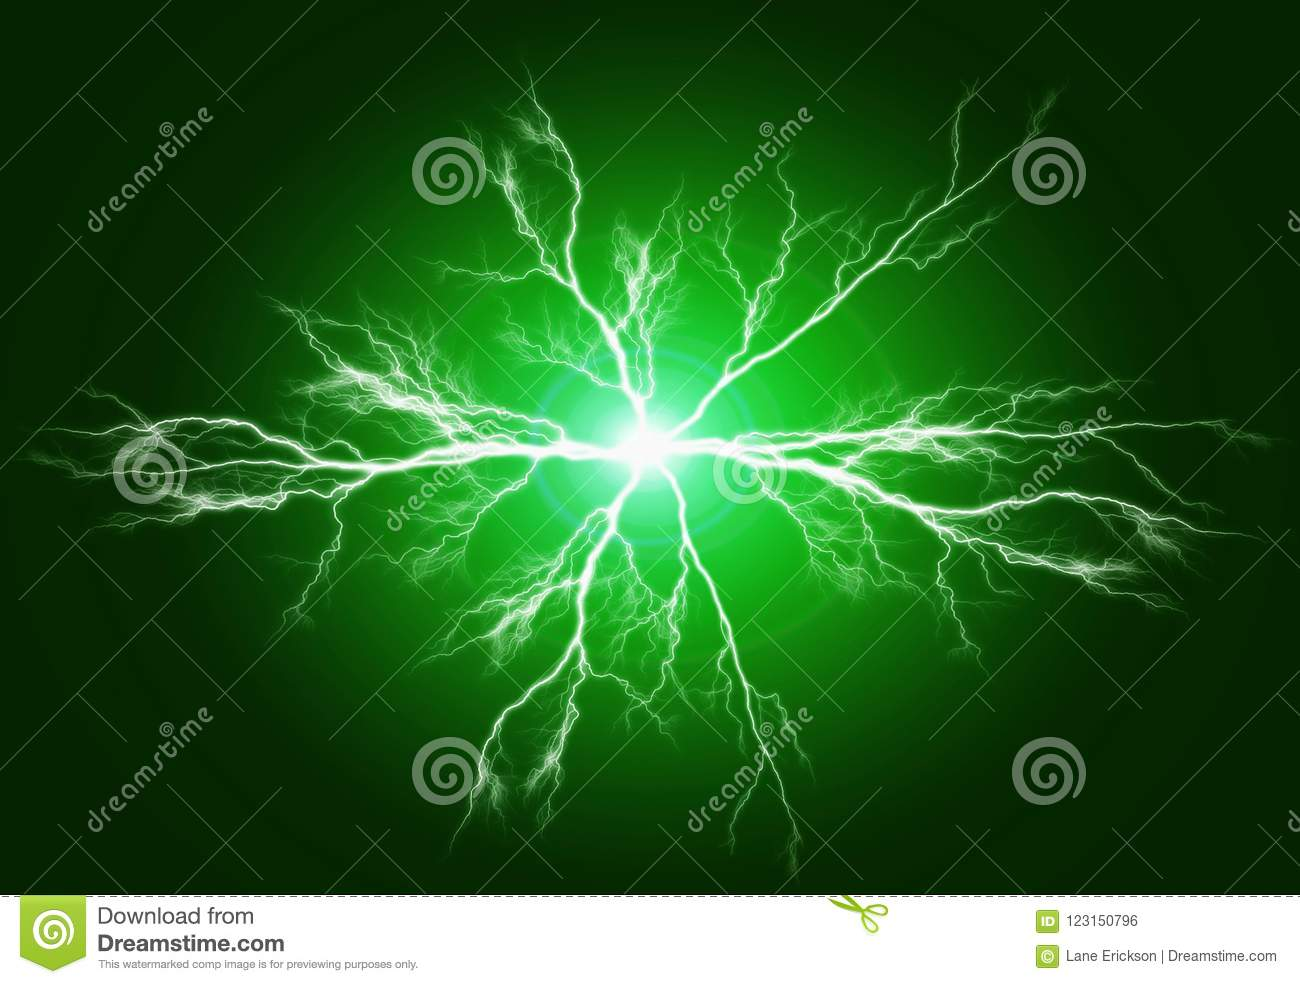 pure power and electricity stock photo image of outburst 123150796